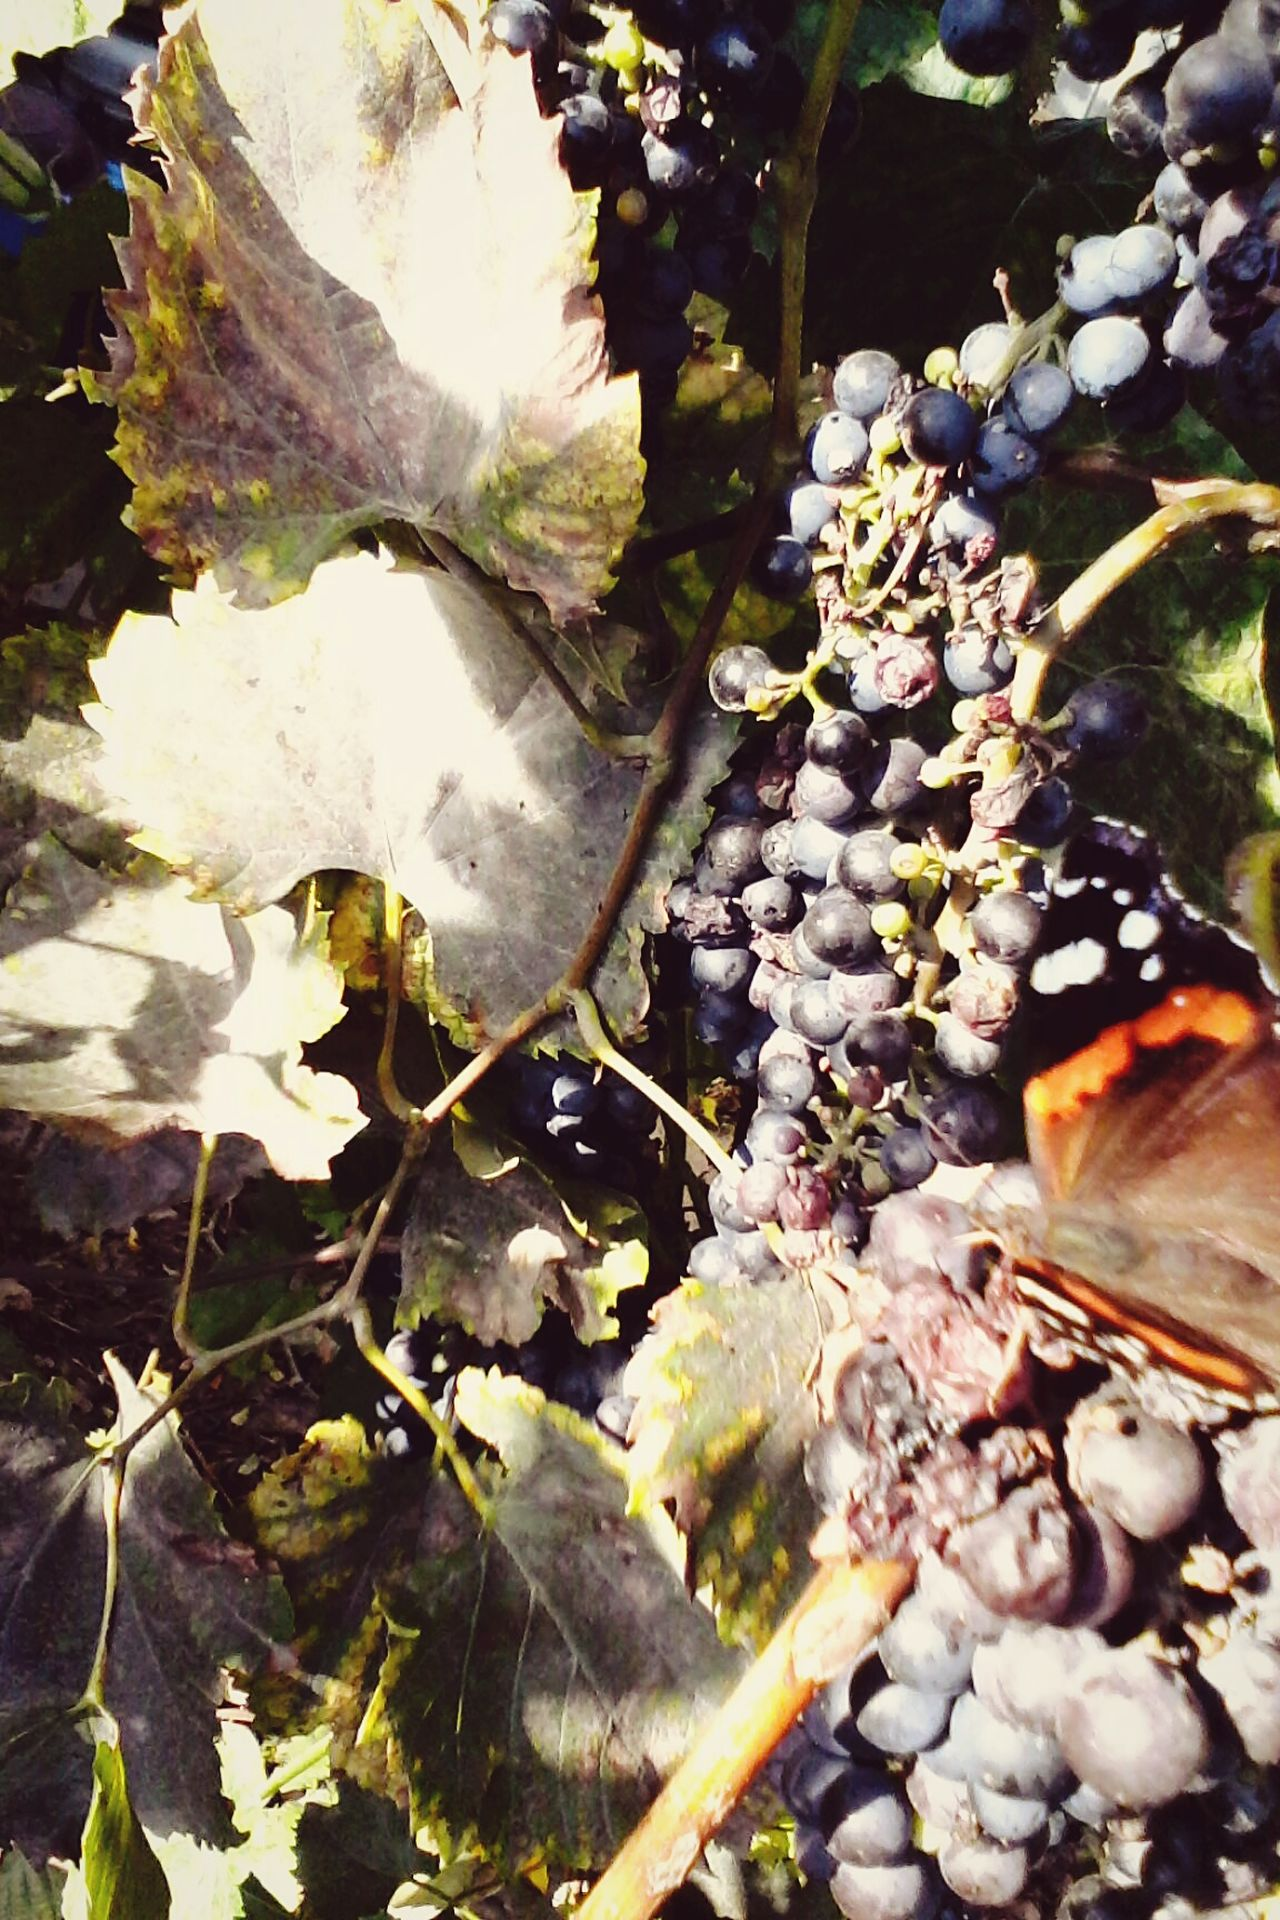 Beauty In Nature Nature Outdoors Butterfly Grapes Edited By @wolfzuachis Butterfly Eating Grape's Juice Autumn @wolfzuachis Ionitaveronica Wolfzuachis Showcase: October Showcase: 2016 Eyeem Market Butterfly Eating Fruits Slowfood Vineyard Colorful Butterfly - Insect Butterfly Collection Multi Colored Insect Dramatic Angles